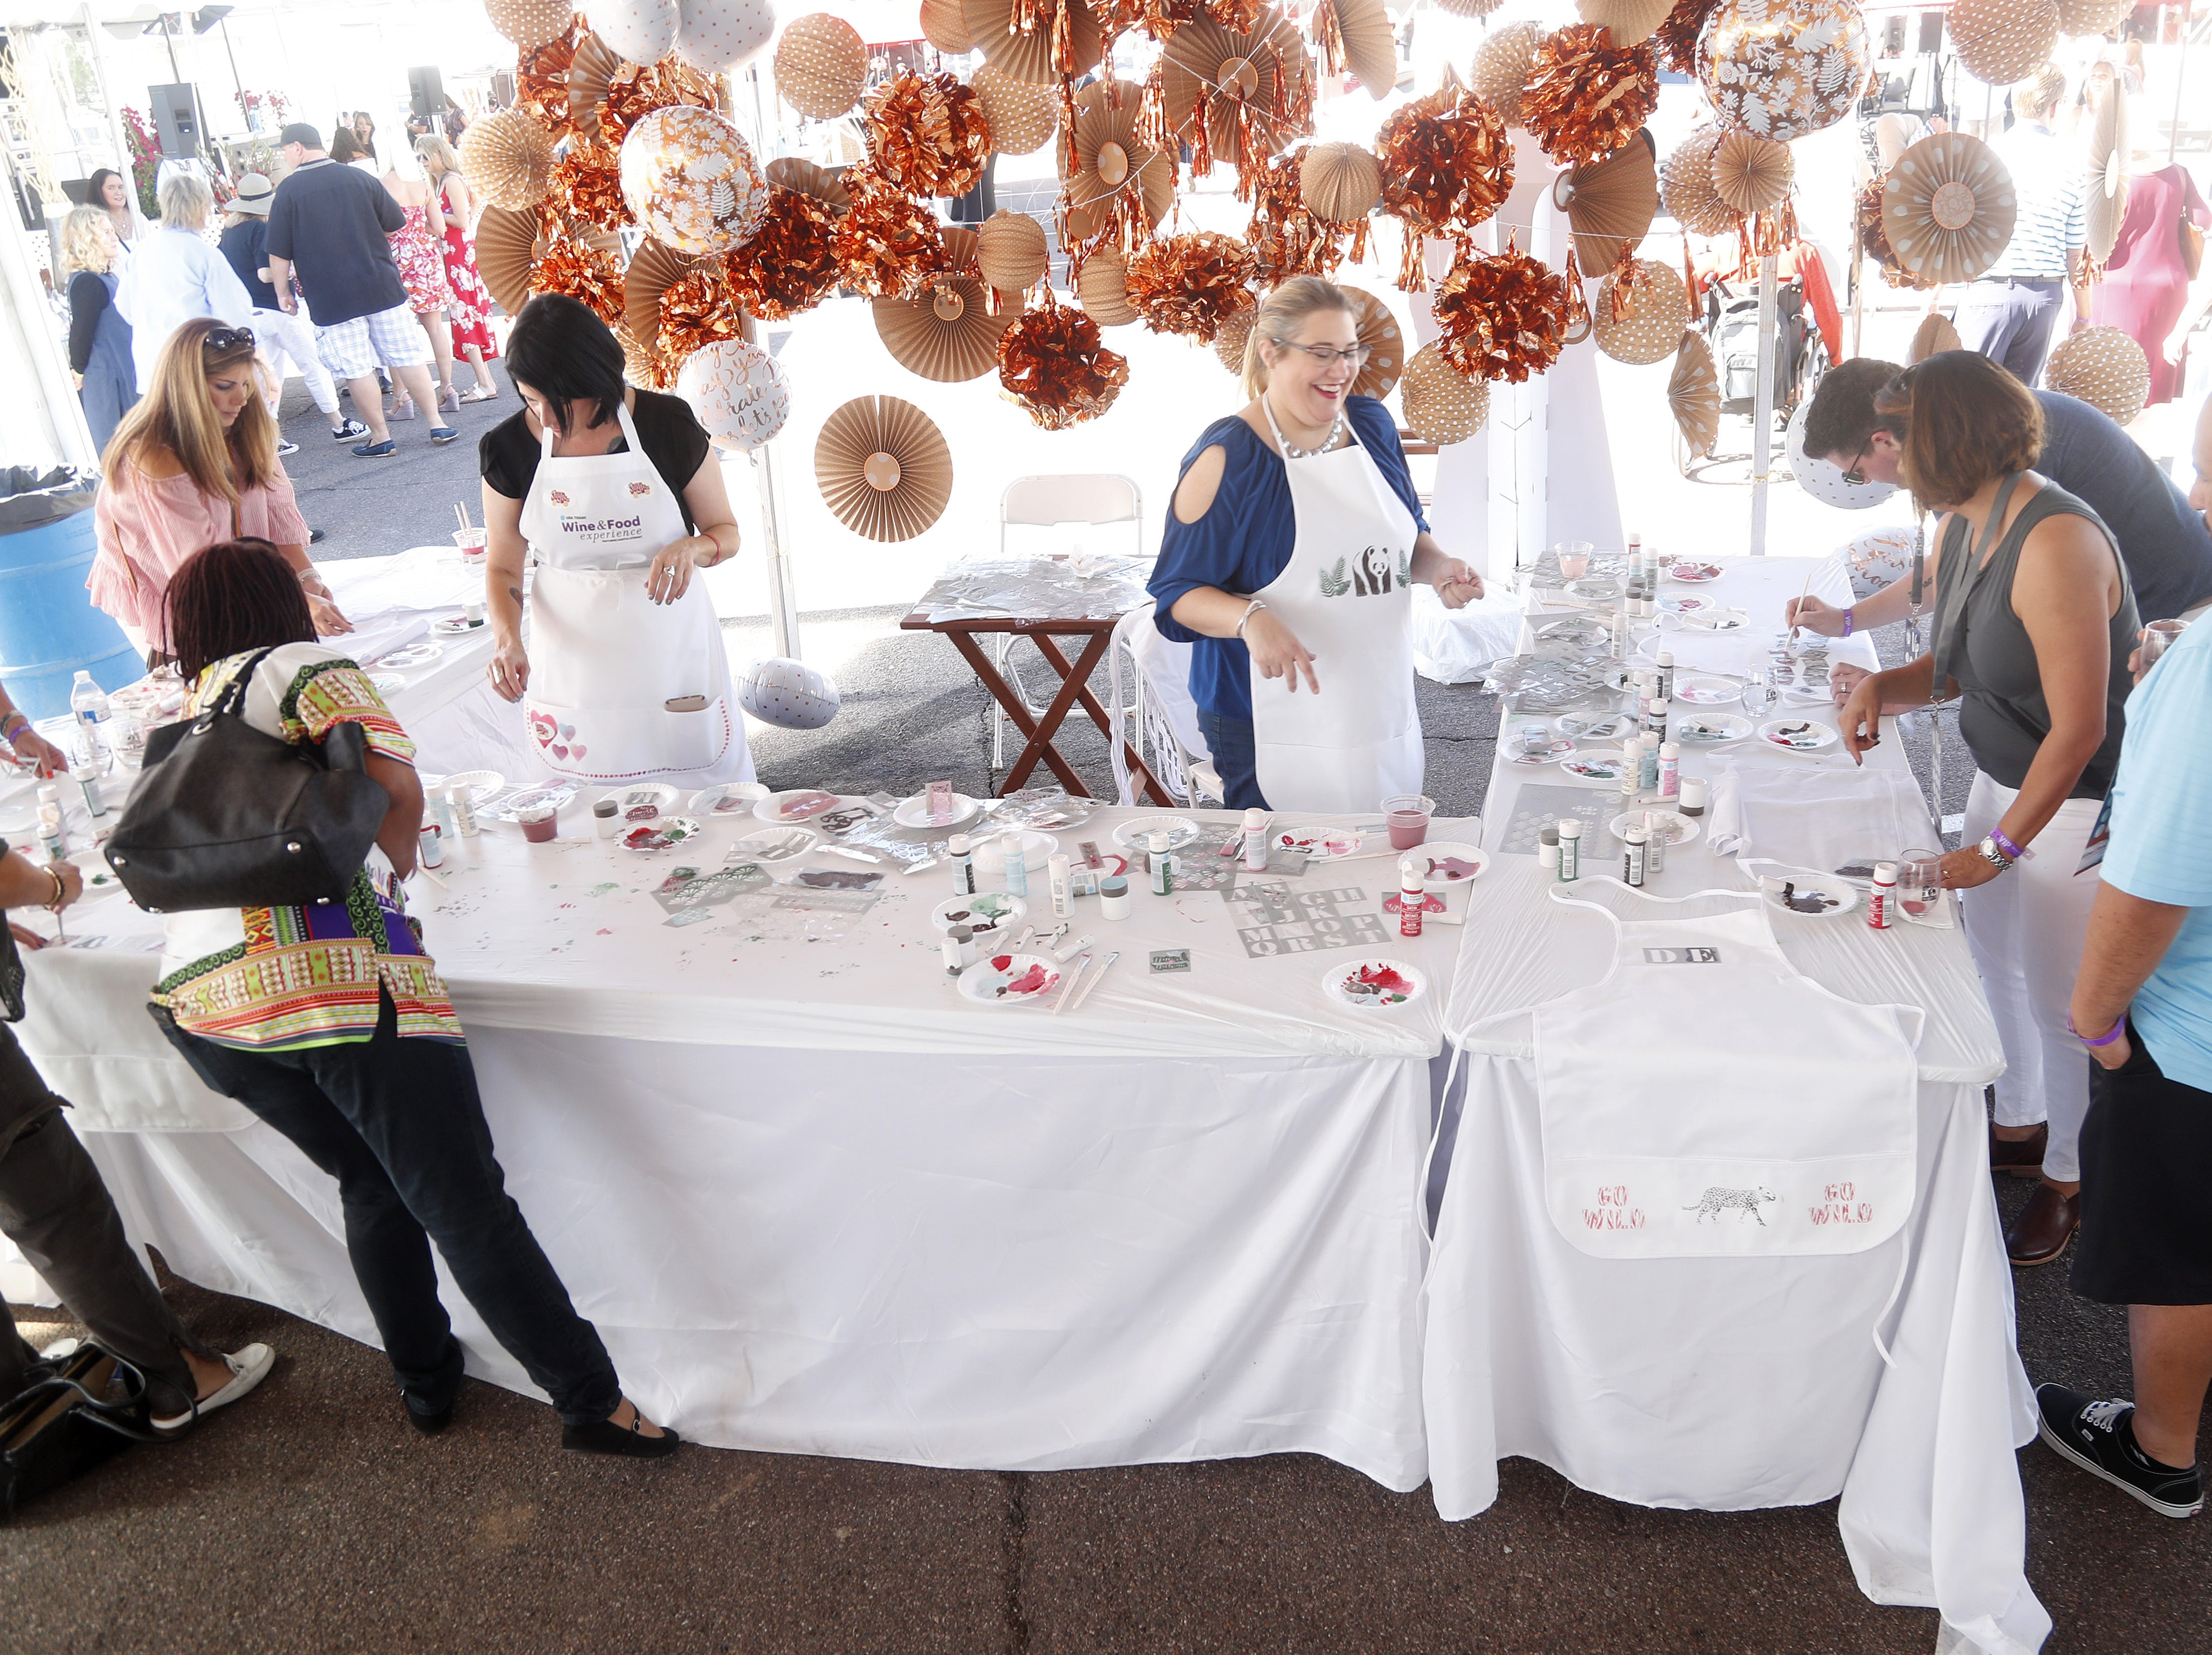 People paint their own aprons inside the Martha Stewart Living tent during the azcentral Wine & Food Experience at WestWorld of Scottsdale, Ariz. on November 3, 2018.